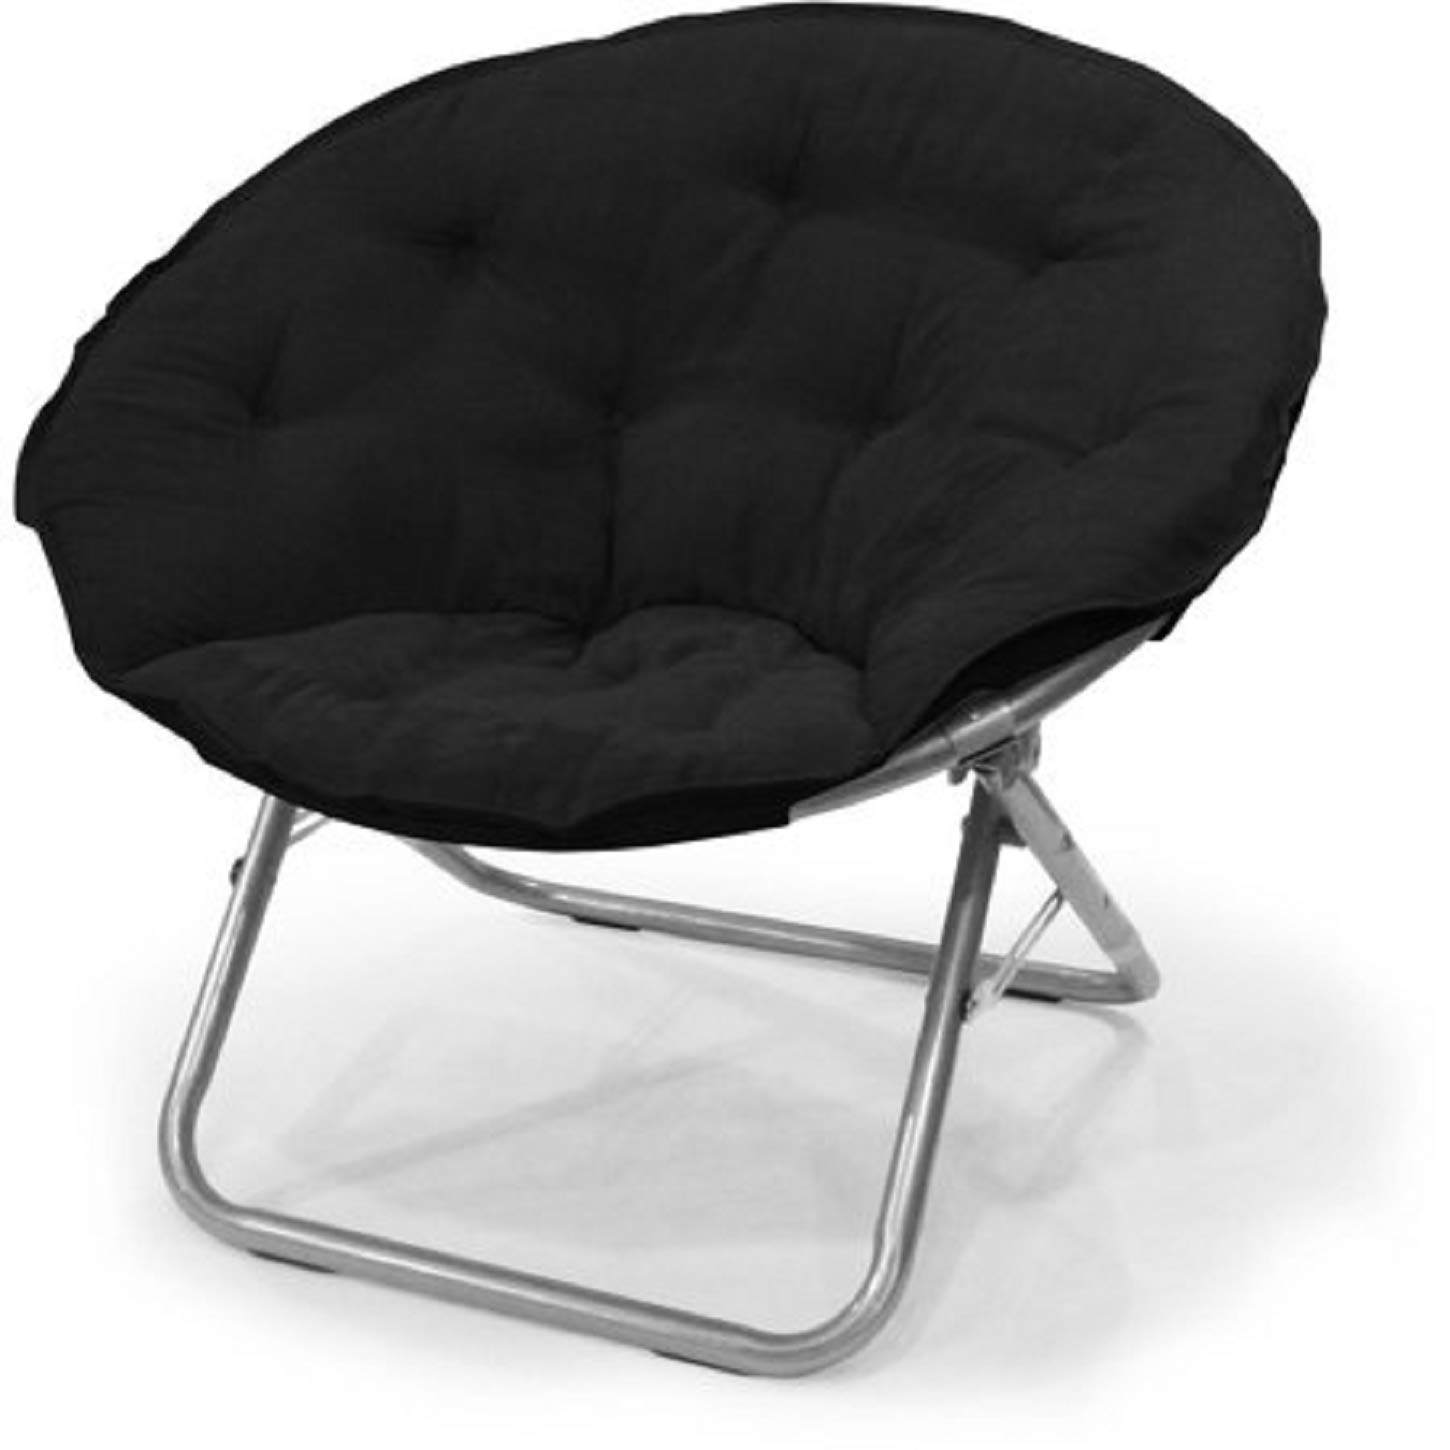 Mainstays Large Microsuede Saucer Chair, Multiple Colors (Black)